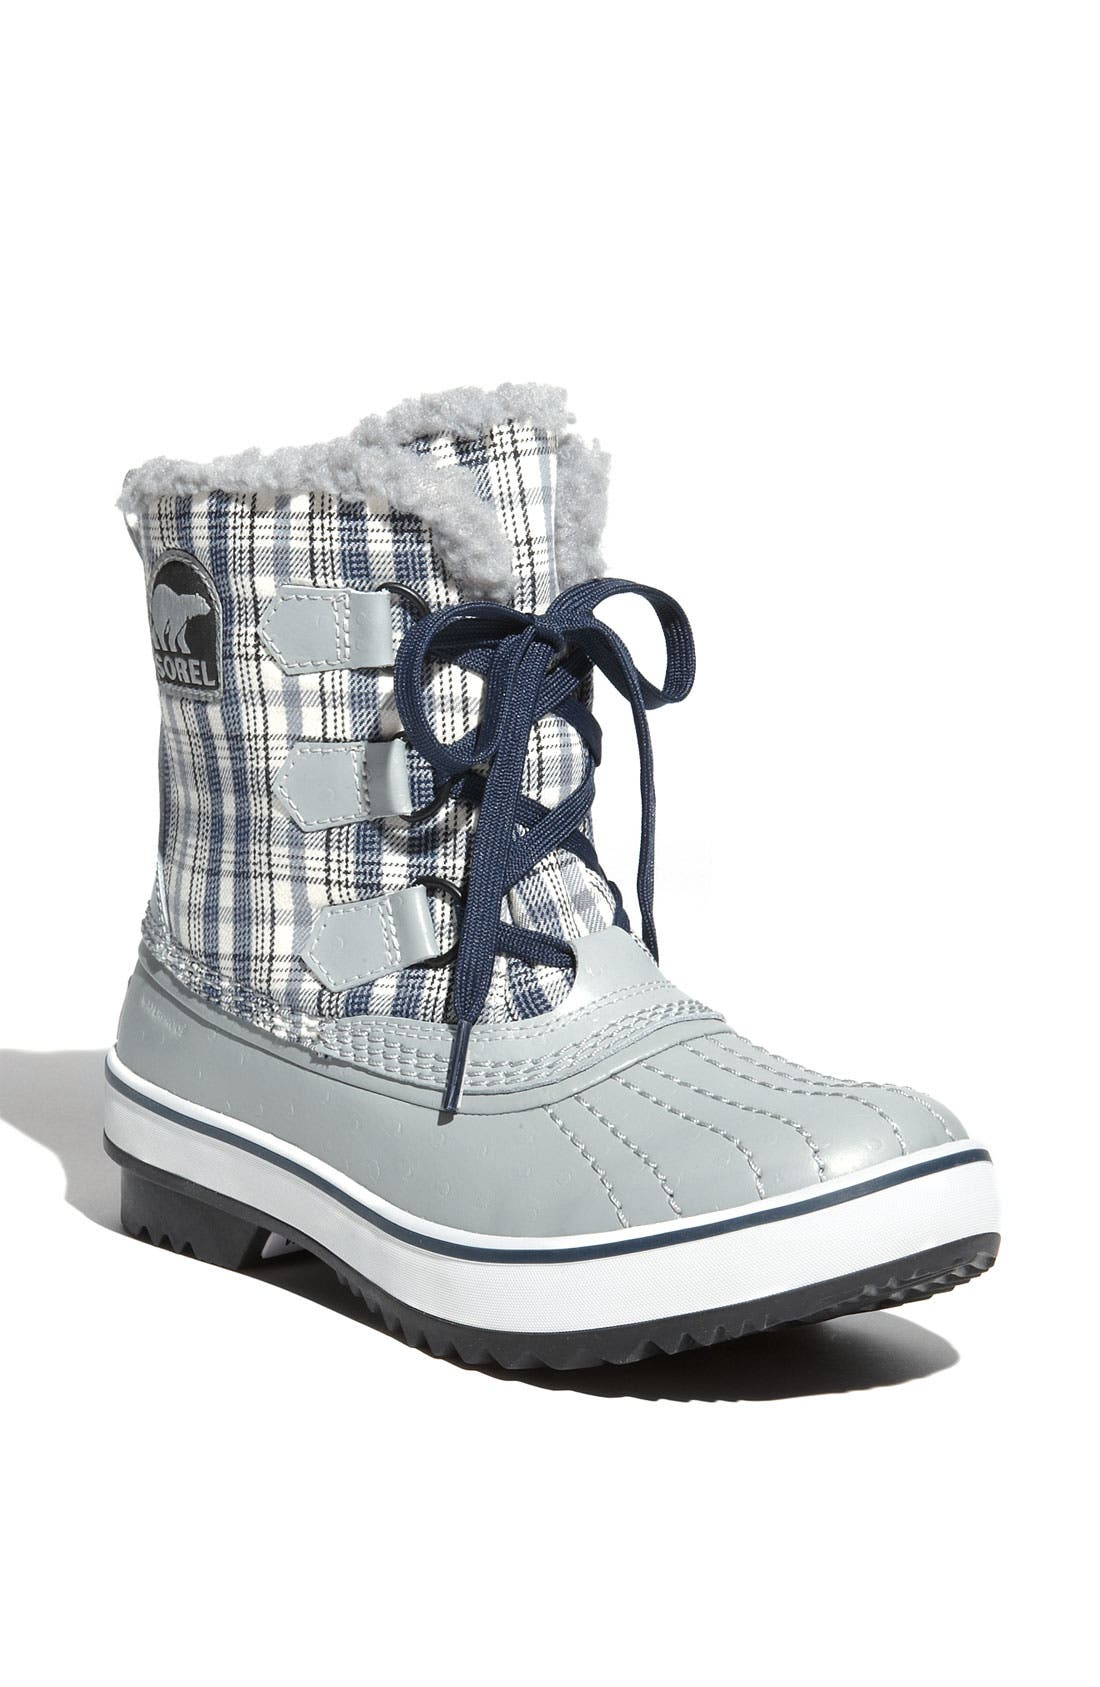 Alternate Image 1 Selected - SOREL 'Tivoli' Waterproof Boot